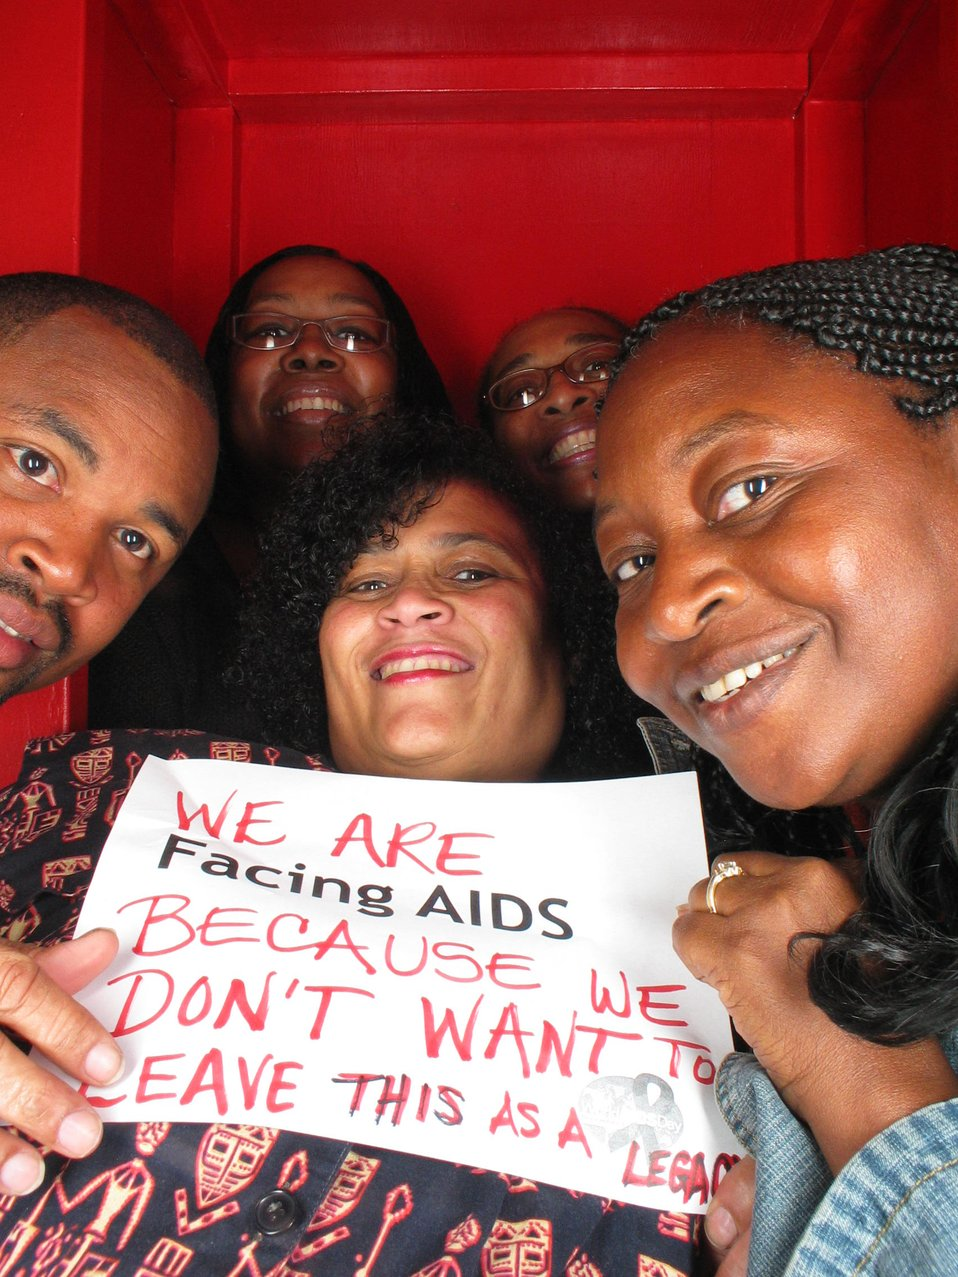 We are Facing AIDS because we don't want to leave this as a legacy